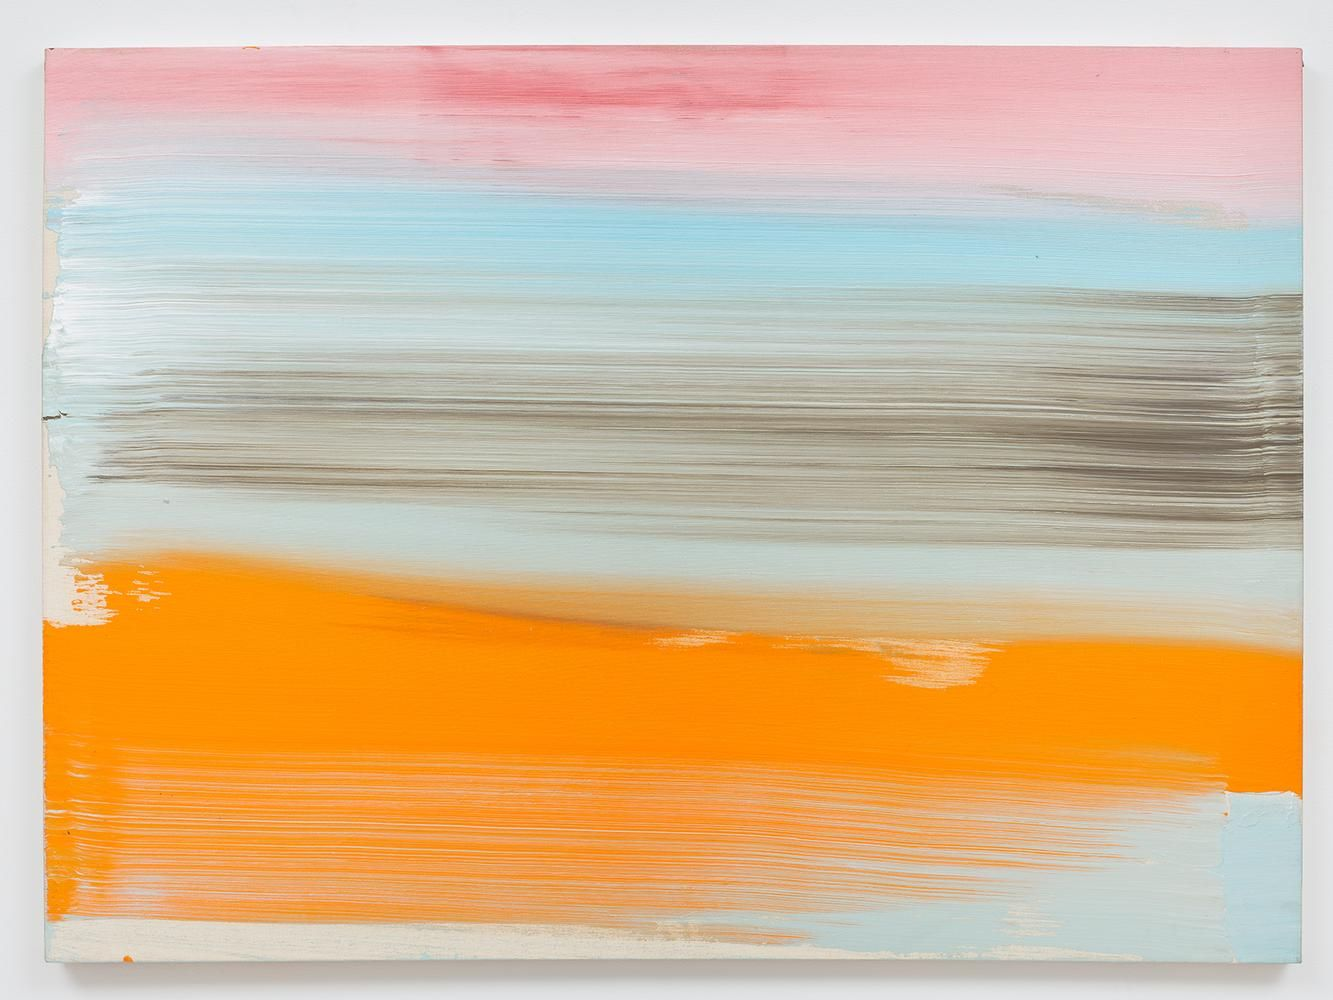 Ed Clark Untitled 2007 acrylic on canvas 44 x 60 1/4 inches (111.8 x 149.9 cm)